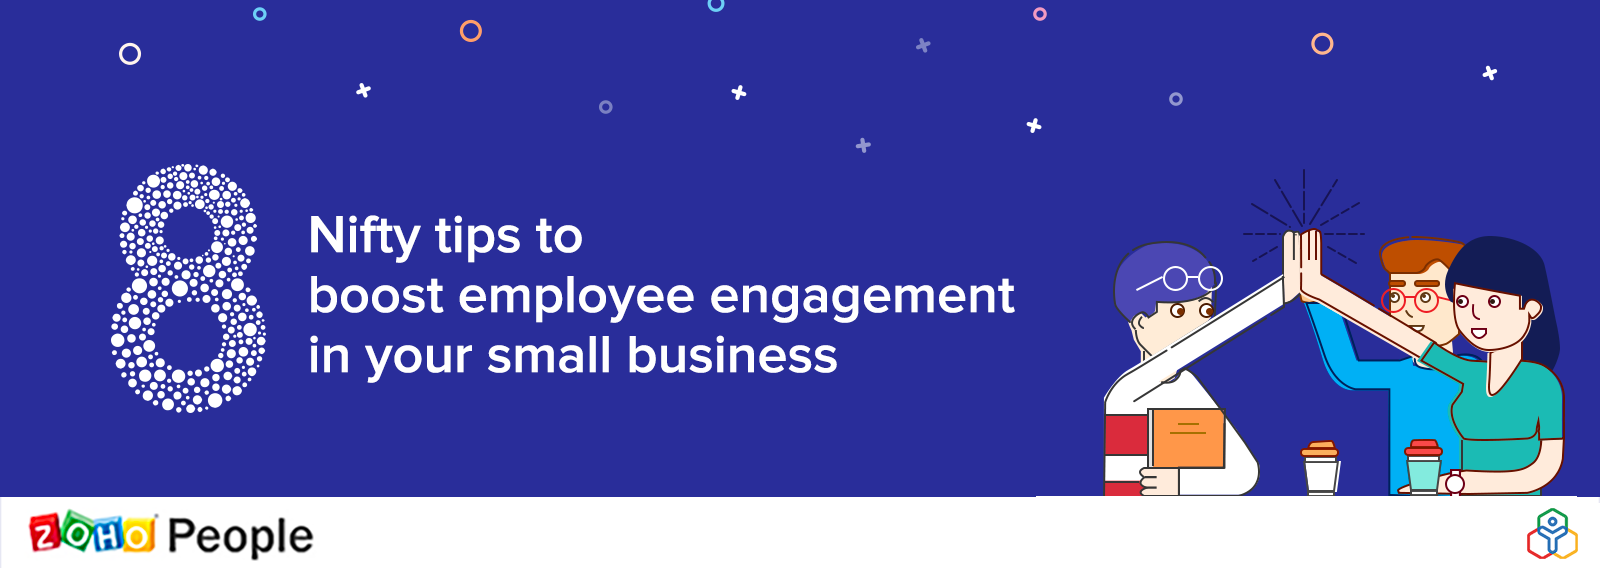 Go the extra mile:      8 nifty tips to boost employee engagement in your small business